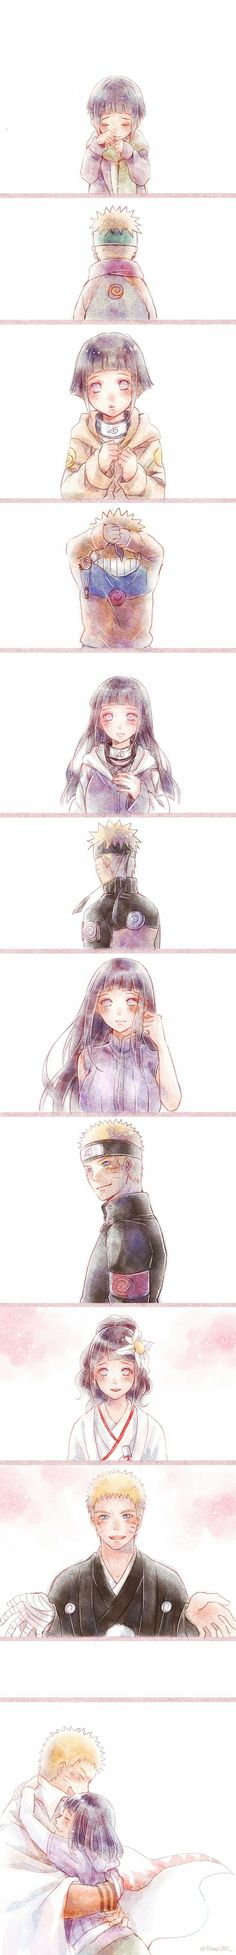 I love Hinata for always being with Naruto, no matter what she had to go through. That is true strength. She was VERY useful in the series of Naruto. Even tho she doesn't know, she helped Naruto through some tough times too. Anime Naruto, Manga Anime, Naruto Y Hinata, Manga Kawaii, Sasuke Sakura, Naruto Cute, Sarada Uchiha, Hinata Hyuga, Naruto Shippuden Anime